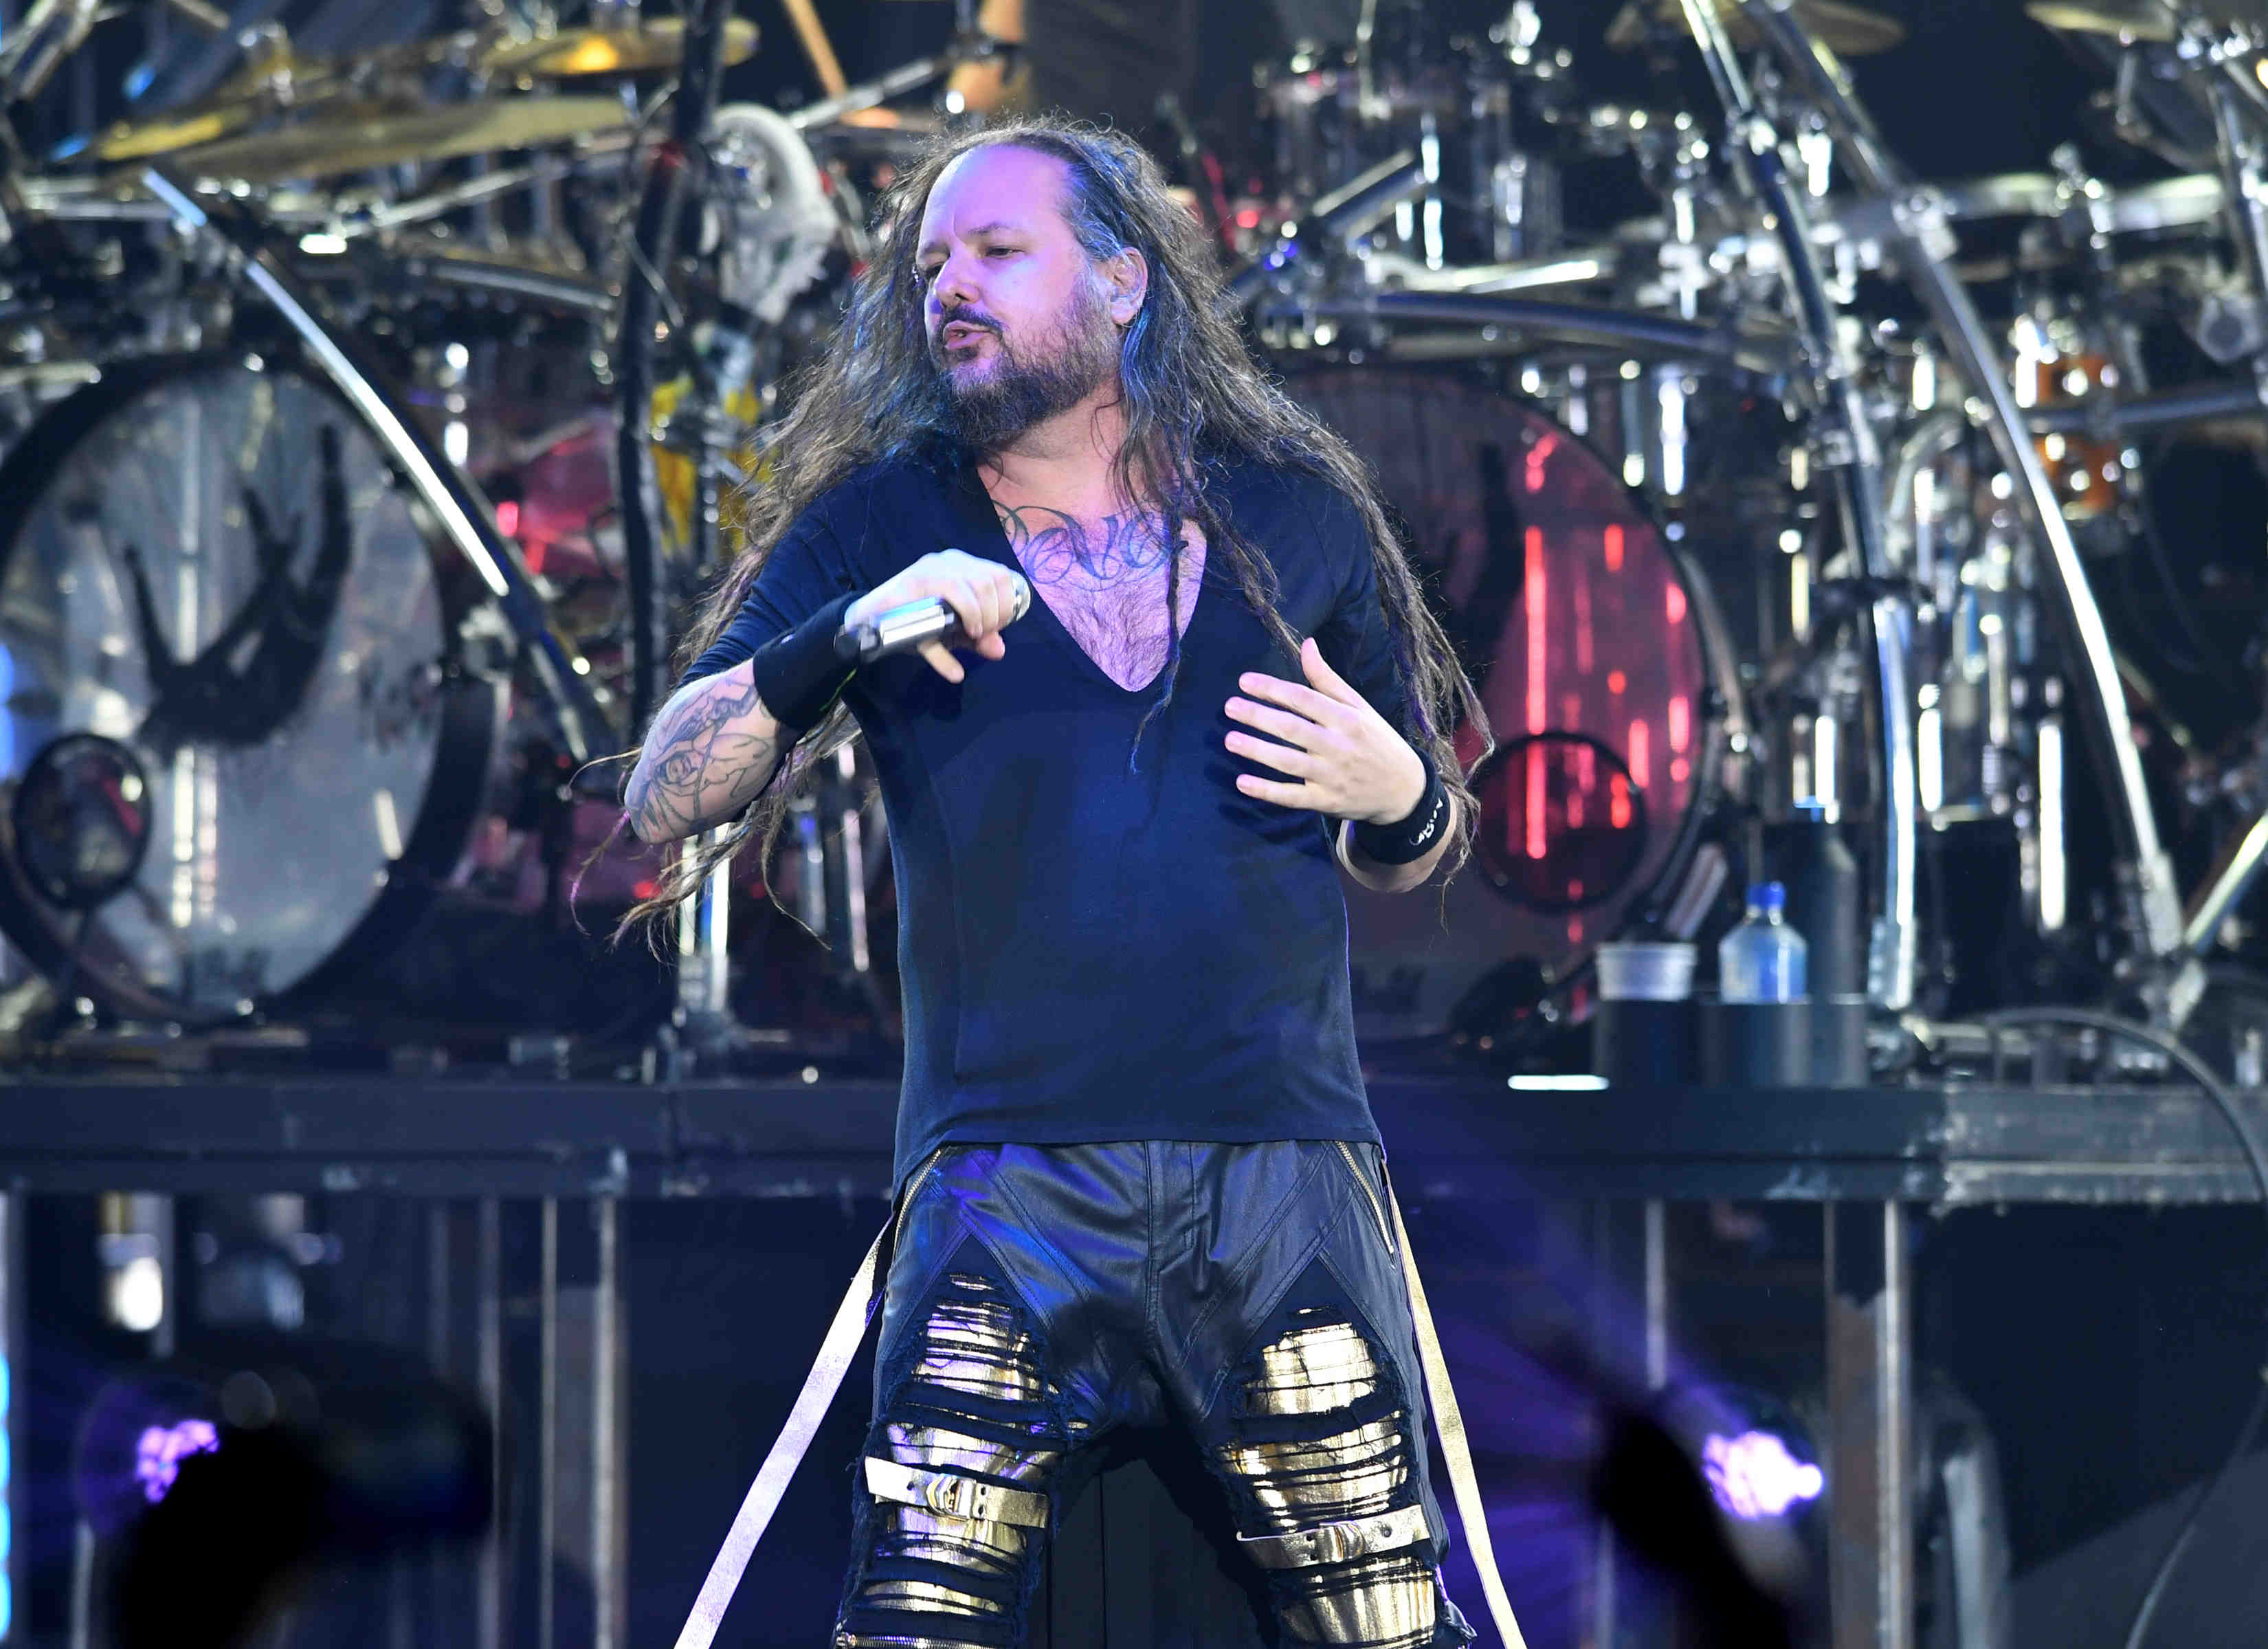 Opening Night - Korn Tour 2021 at iTHINK Financial Amphitheatre